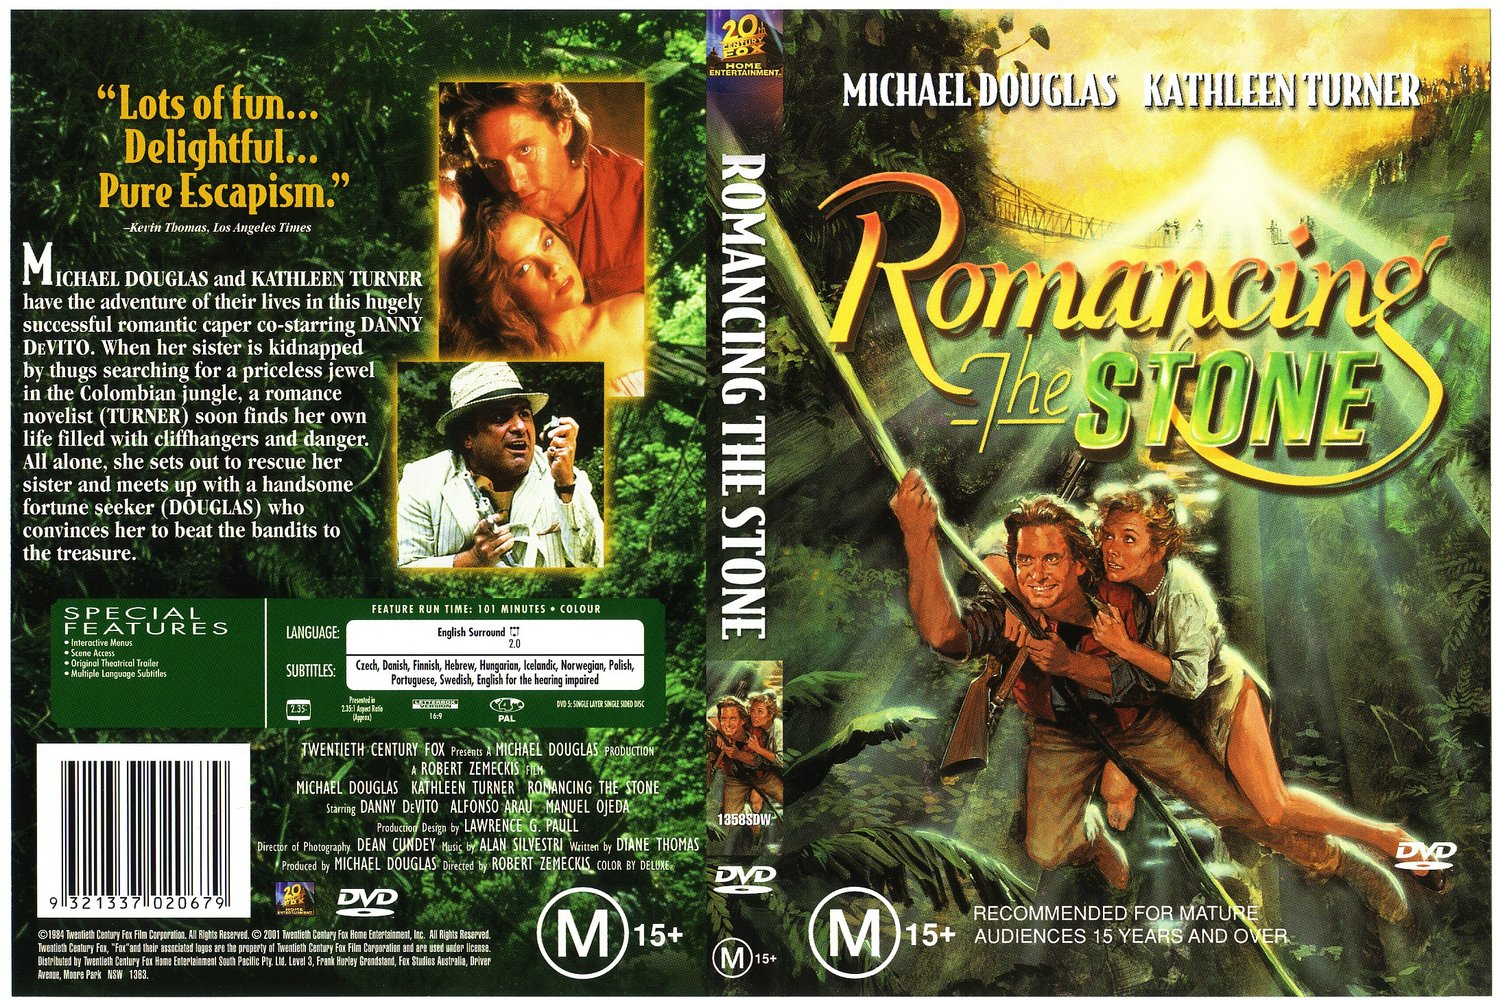 Romancing the Stone (1984) – Action, Adventure, Comedy